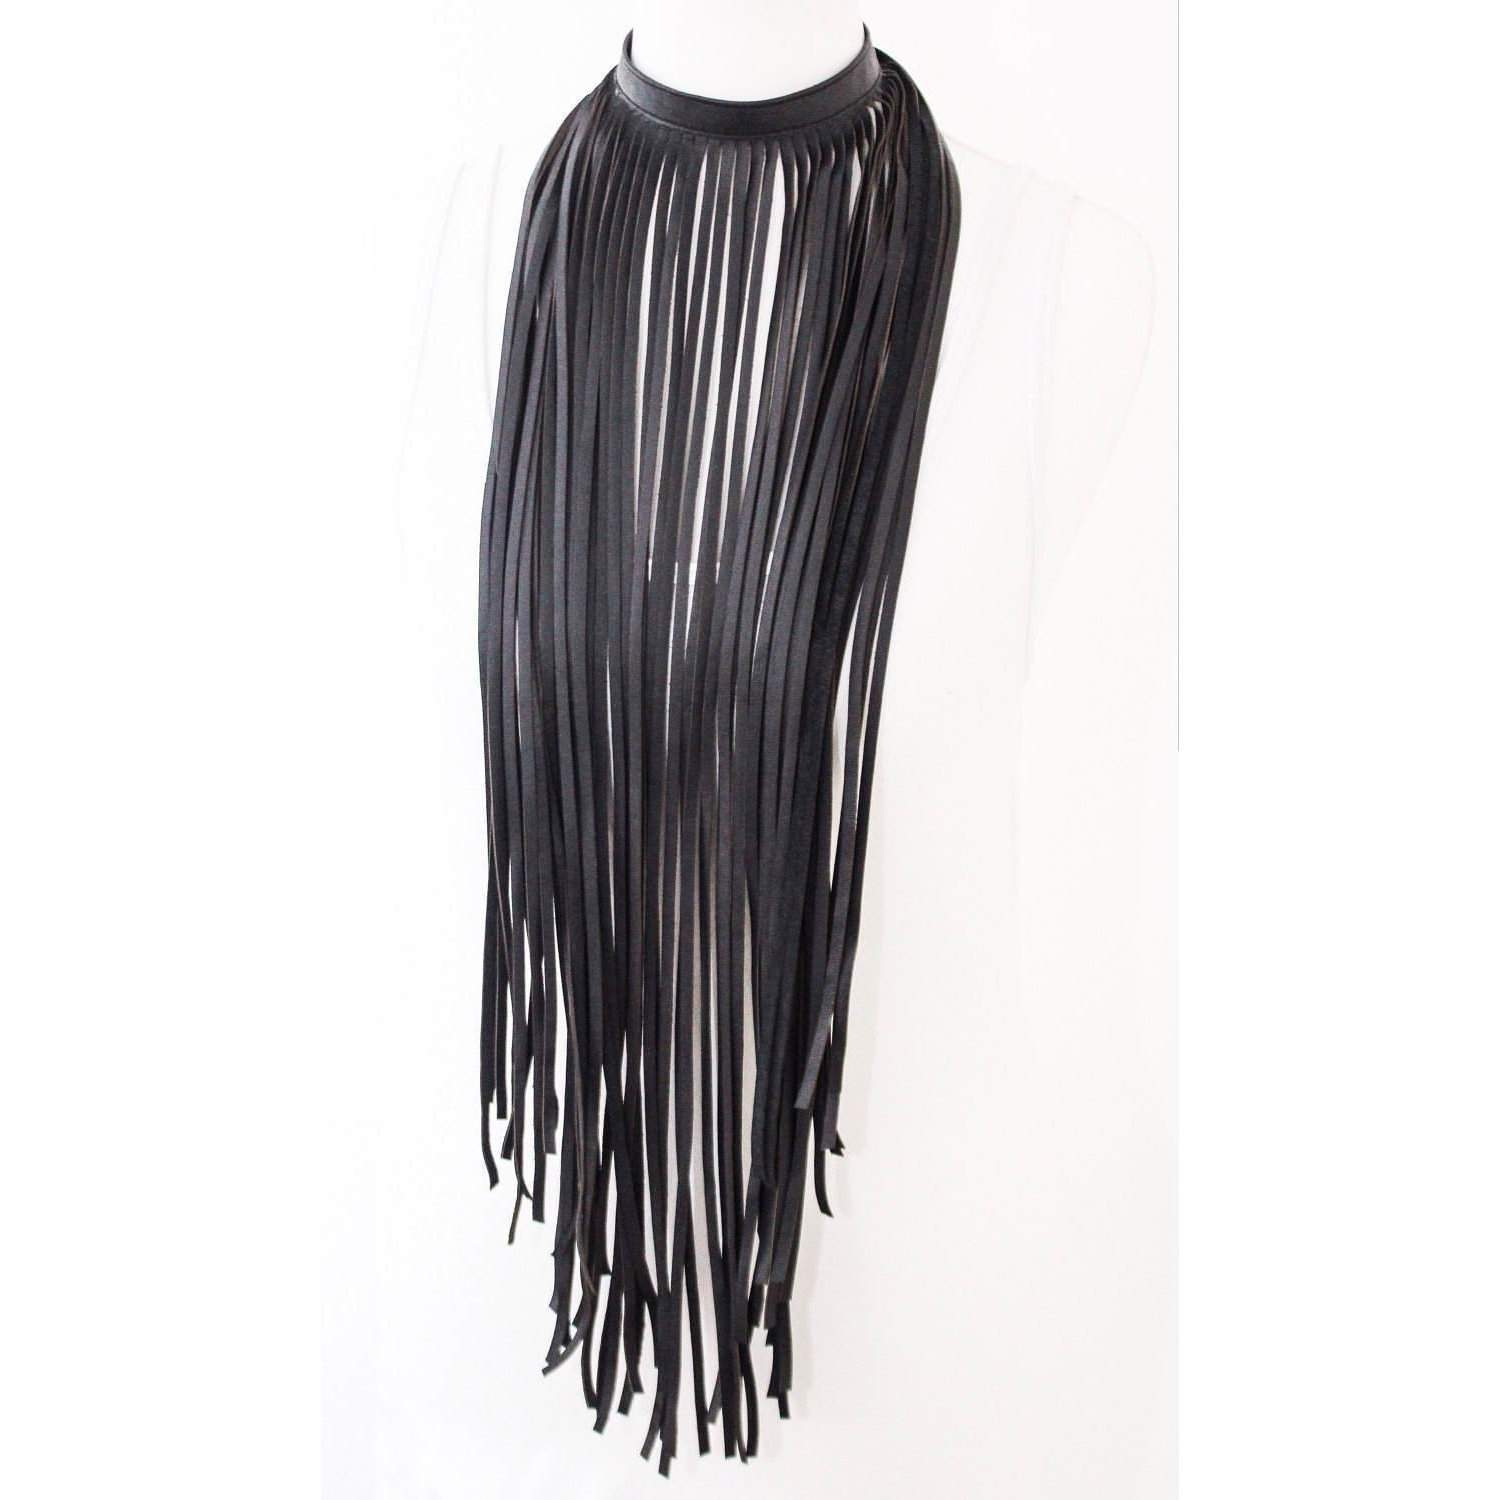 Black Soft Leather Fringe Necklace - loveyaayaa